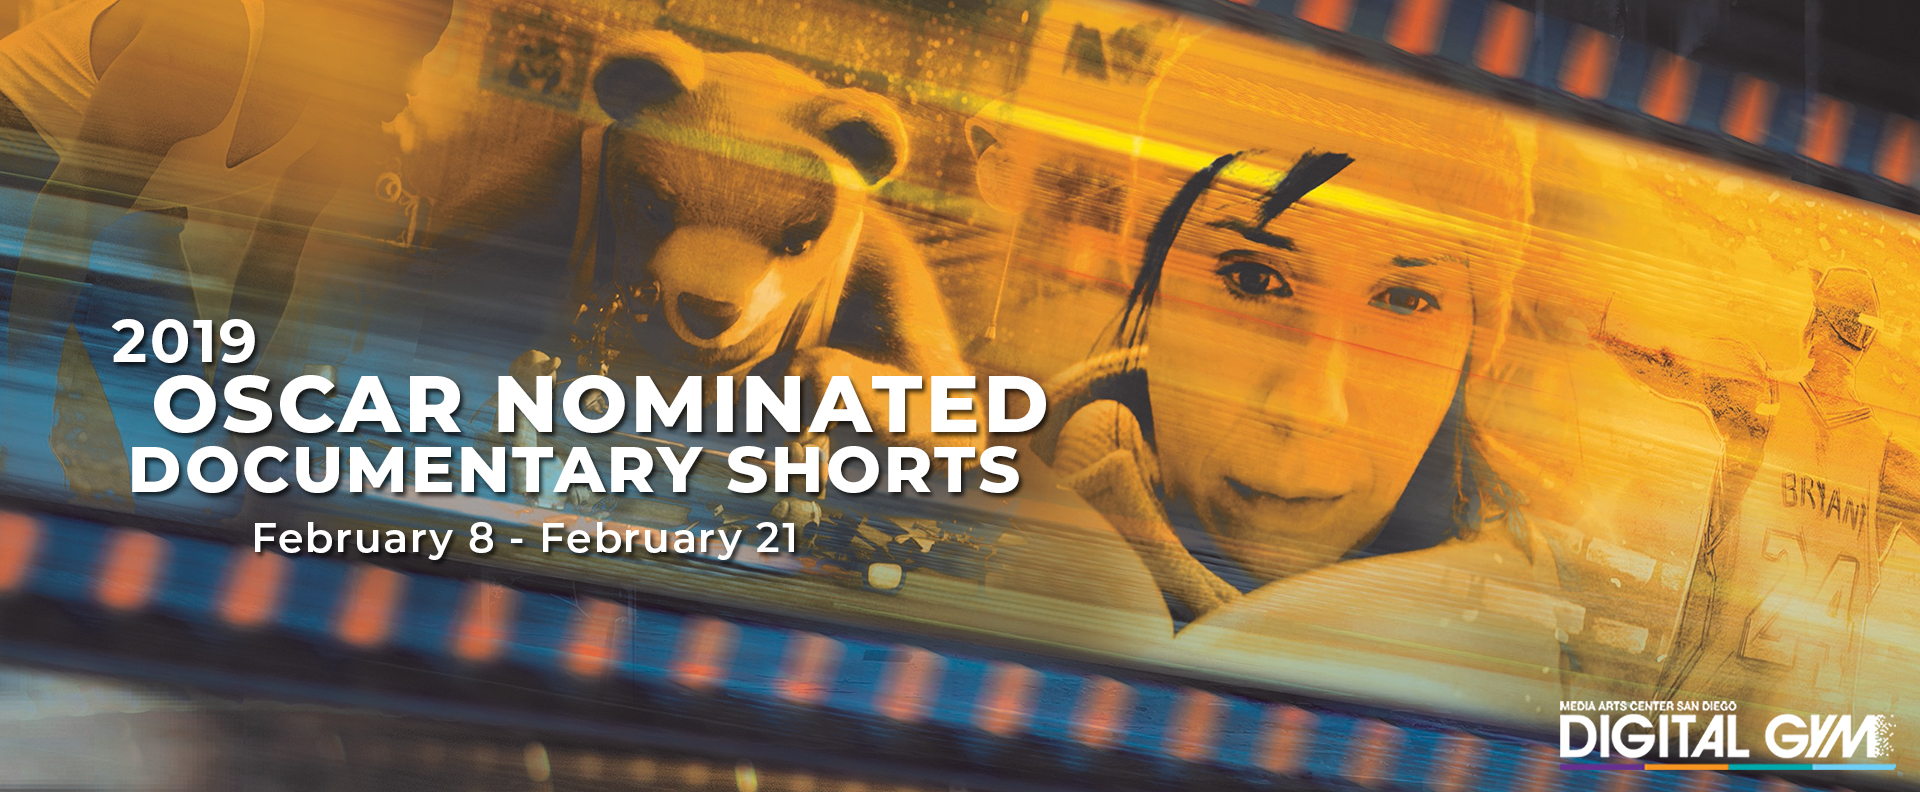 2019 Oscar Nominated Documentary Shorts (February 8 – February 21)